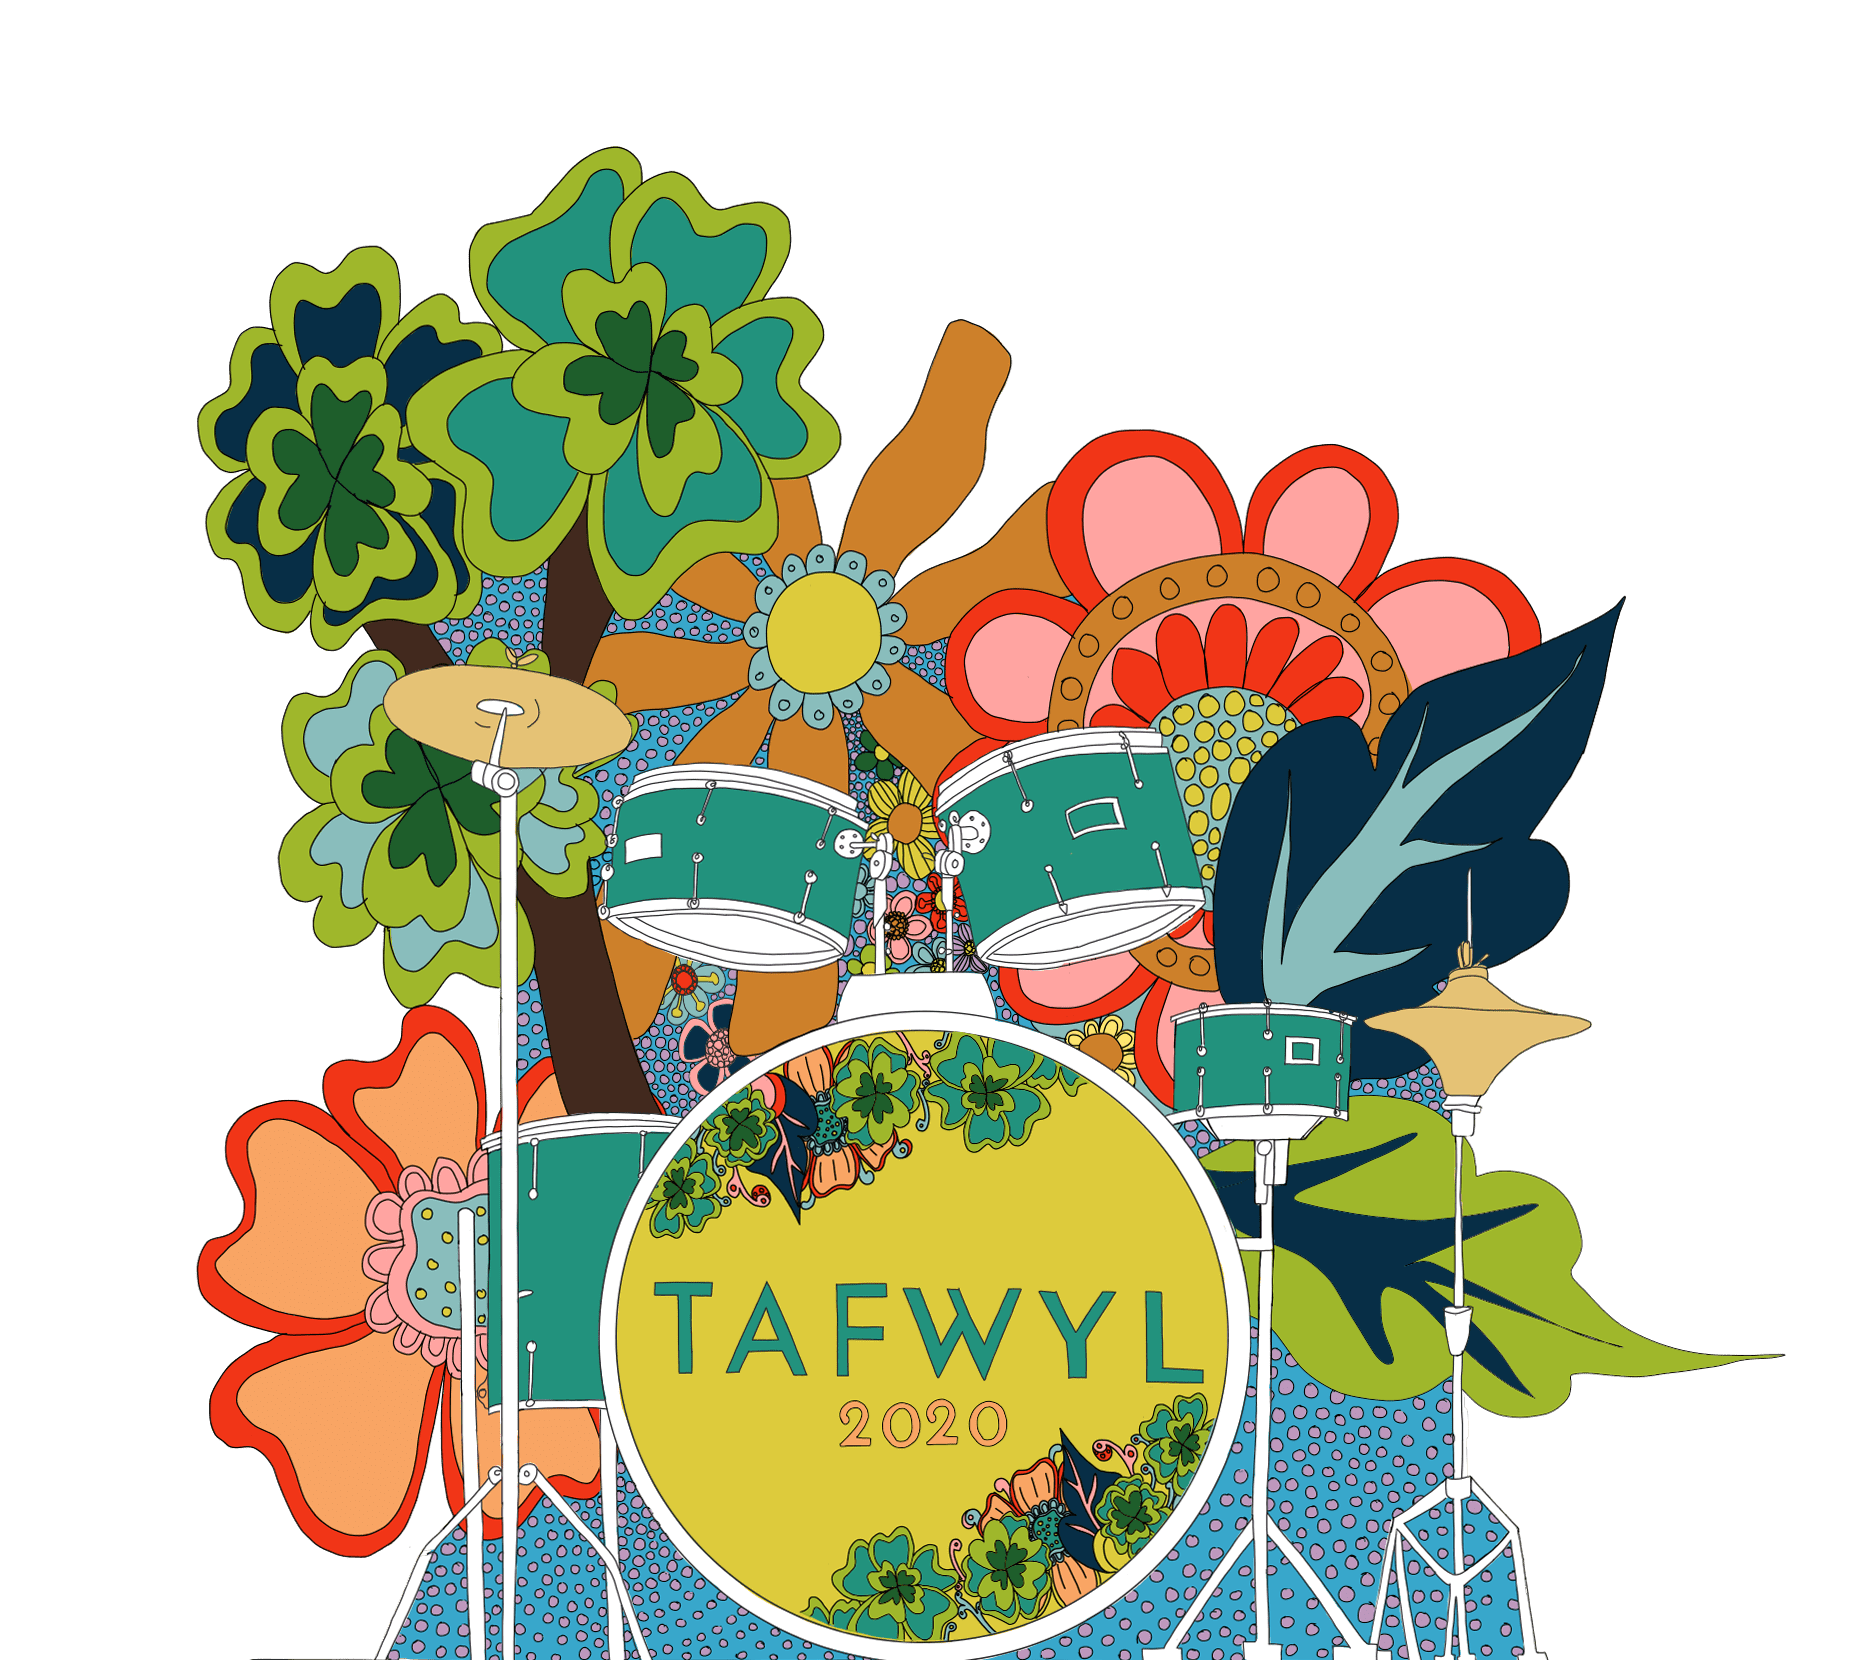 200218-Drumkit-Tafwyl-High-Res